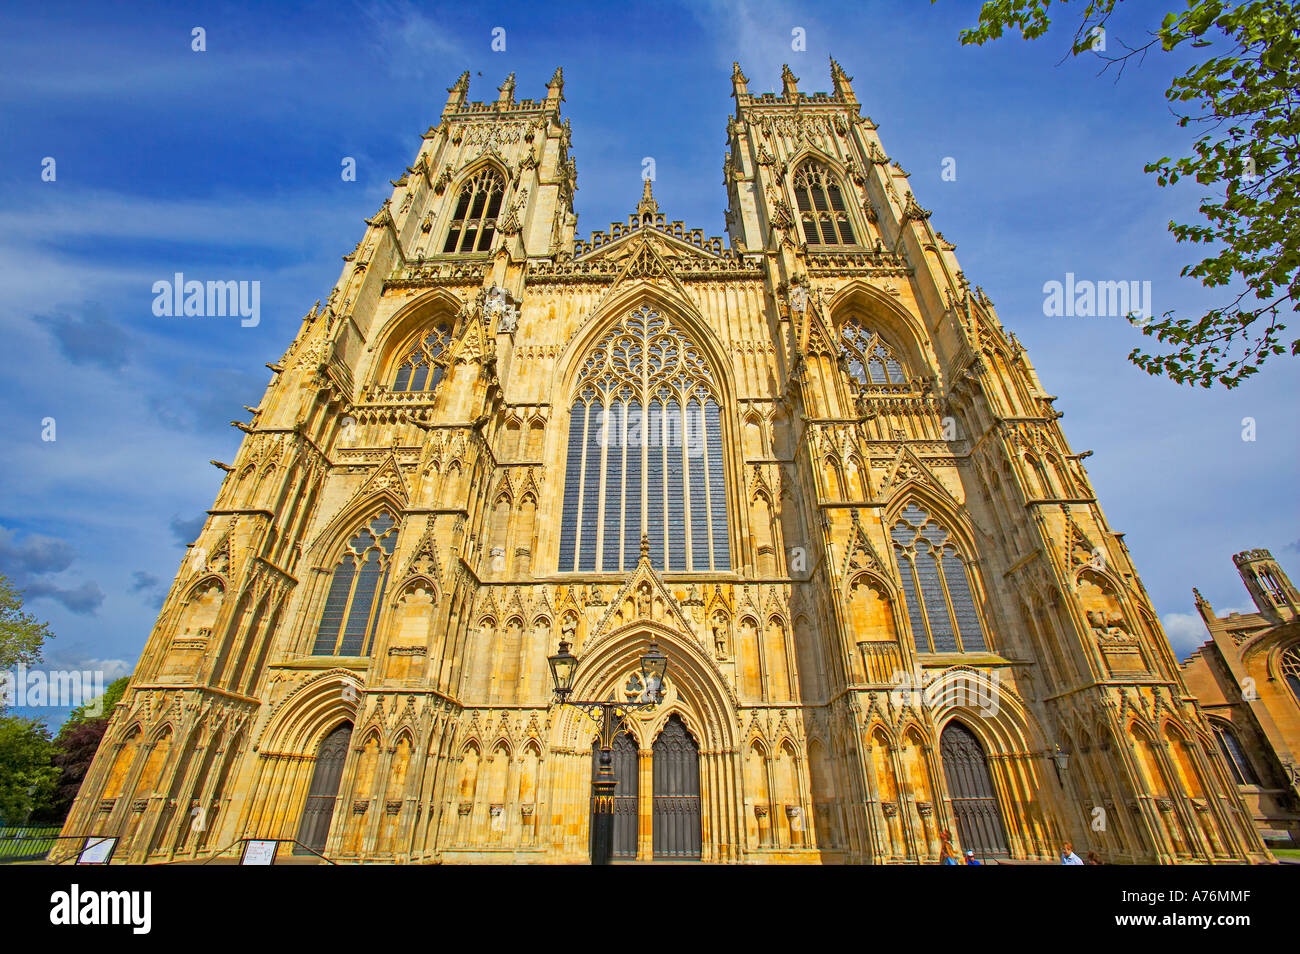 The main facade of the splendid York Minster in the late afternoon - Stock Image